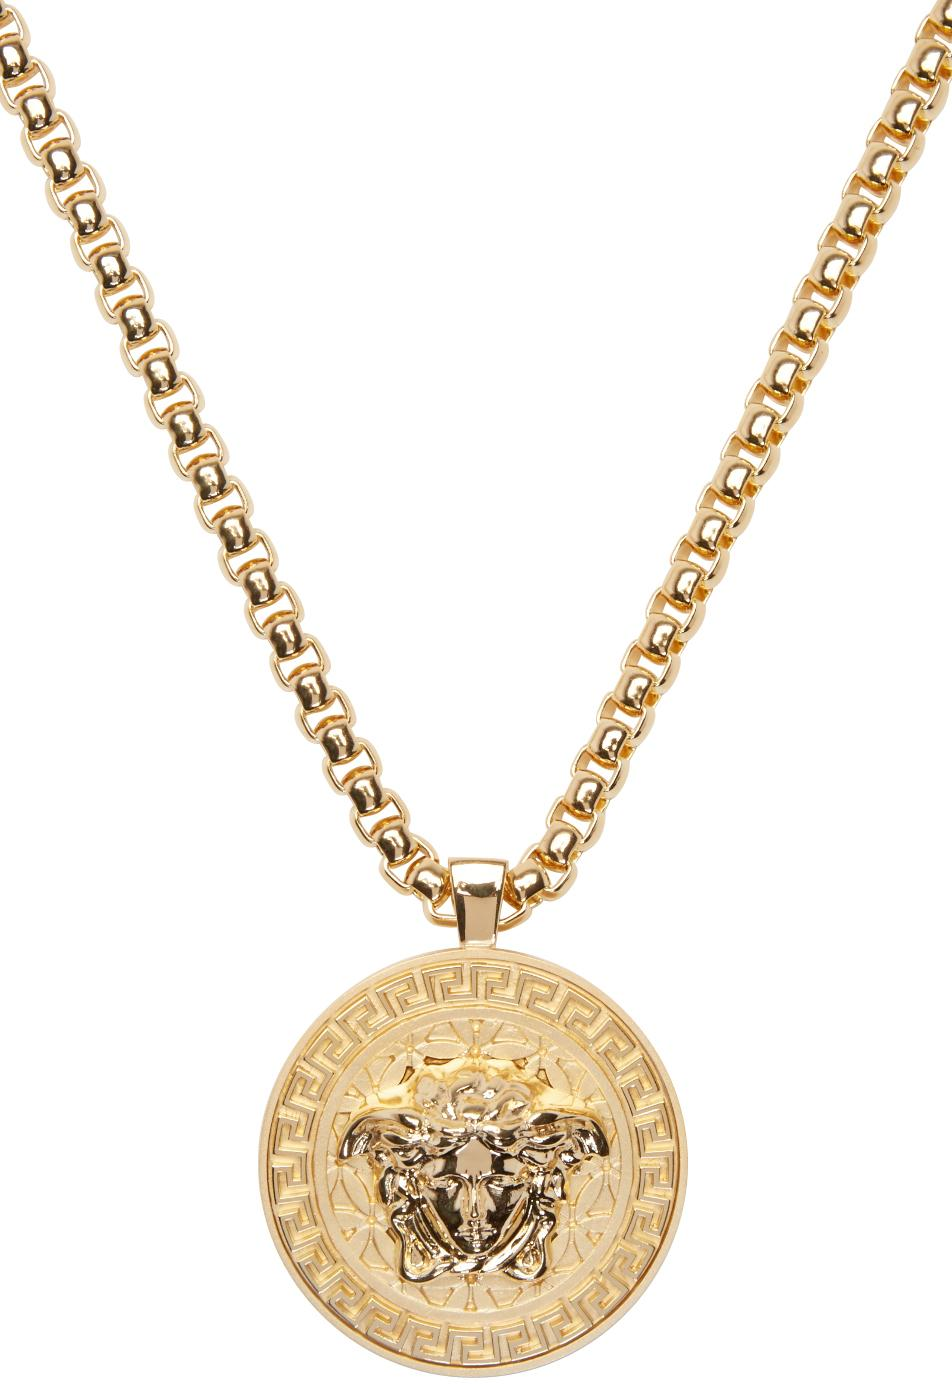 lyst versace gold medusa chain necklace in metallic for men. Black Bedroom Furniture Sets. Home Design Ideas